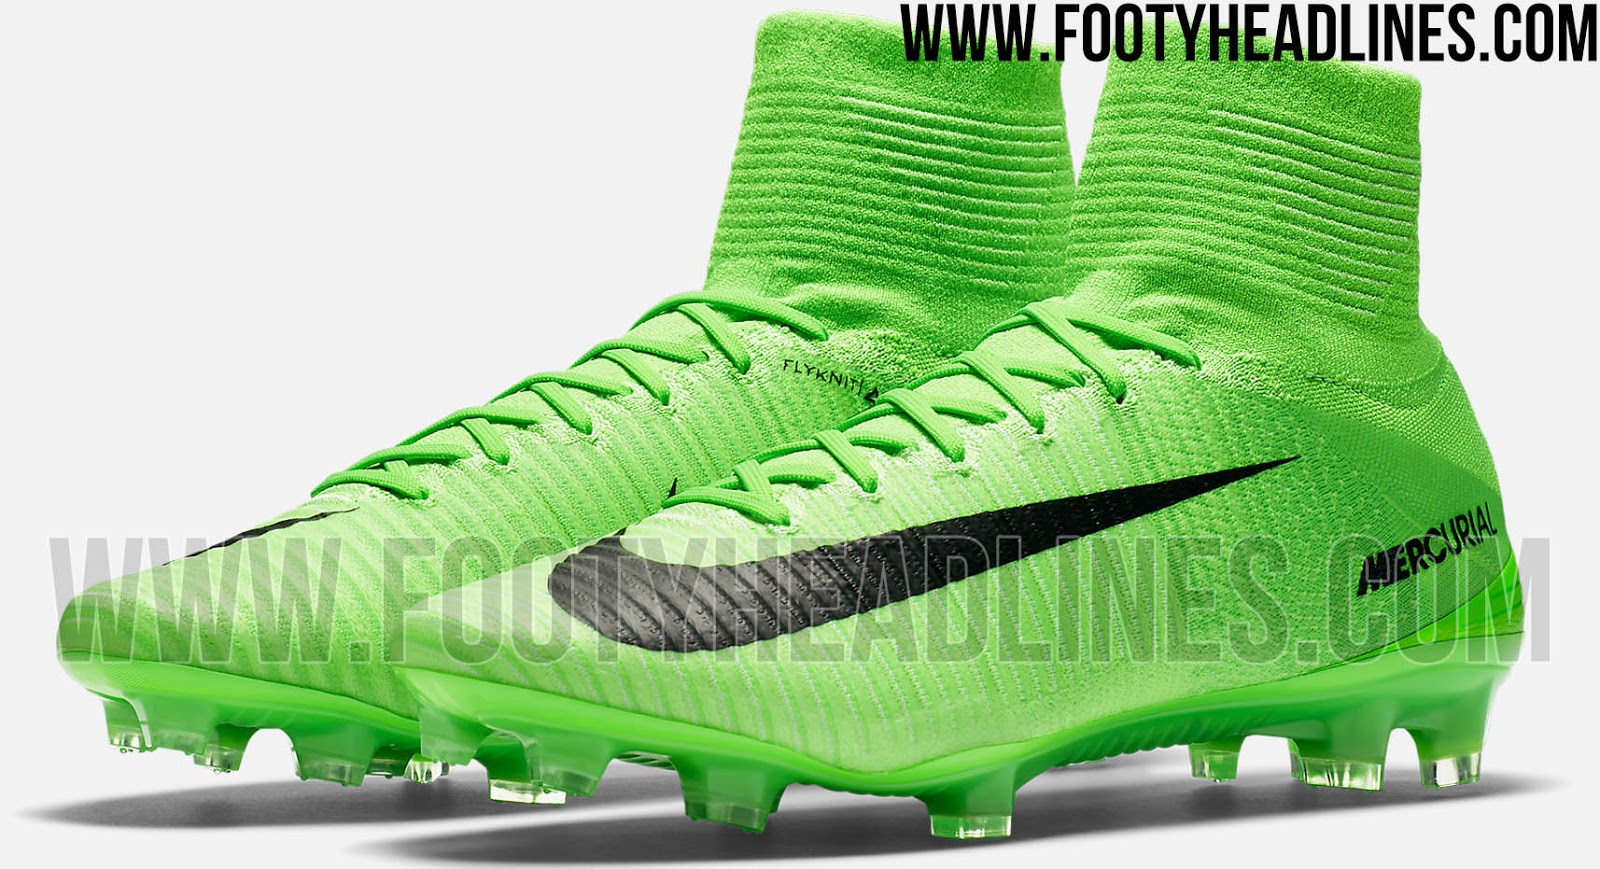 Boot design by nike - The Nike Mercurial Superfly 2017 Radiation Flare Pack Introduces A Fresh Design For Nike S Speed Boot In Electric Green And Black